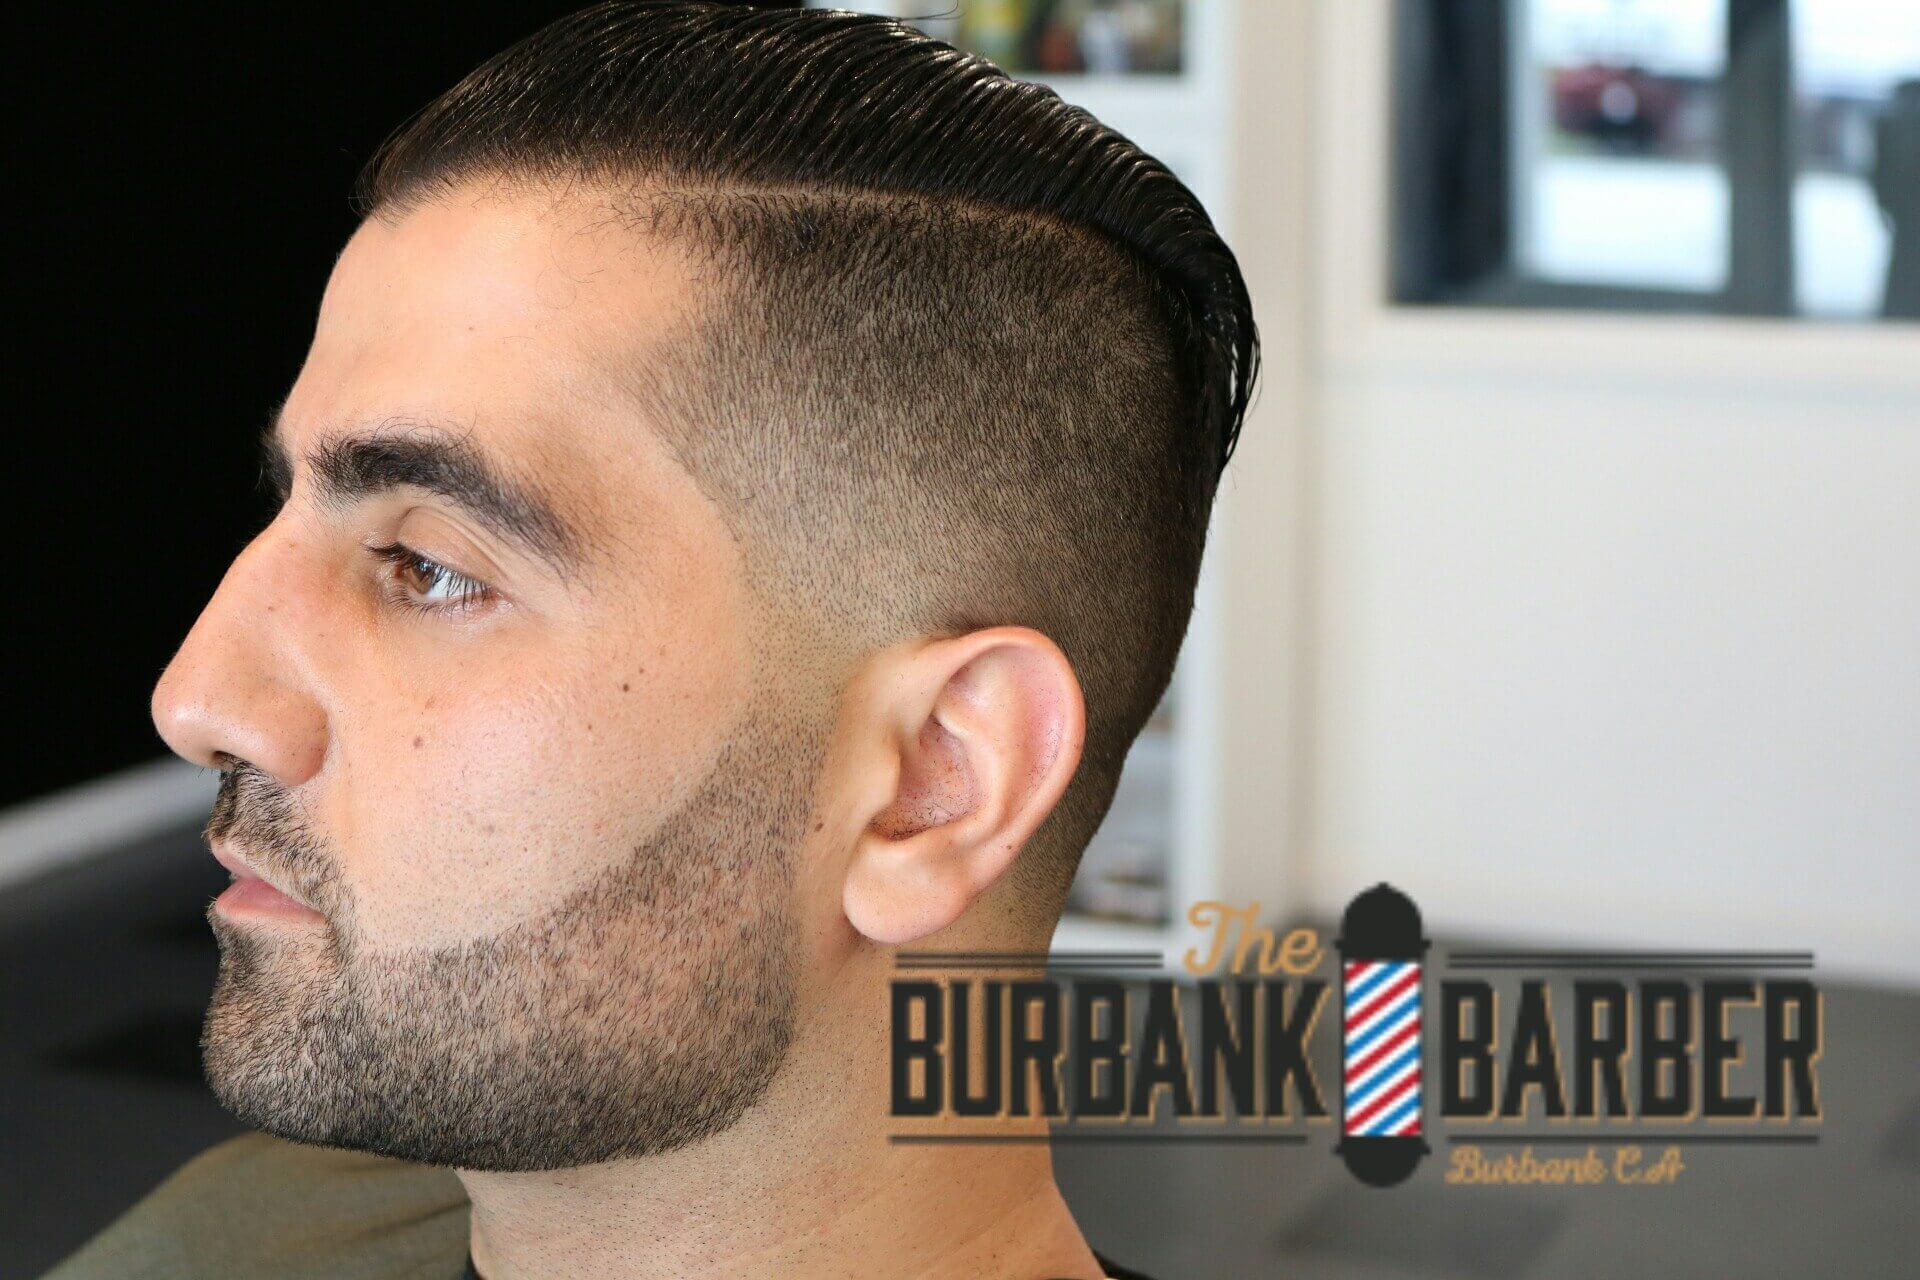 The Hide Room – The Burbank Barber, Angel Orellana, is a vintage